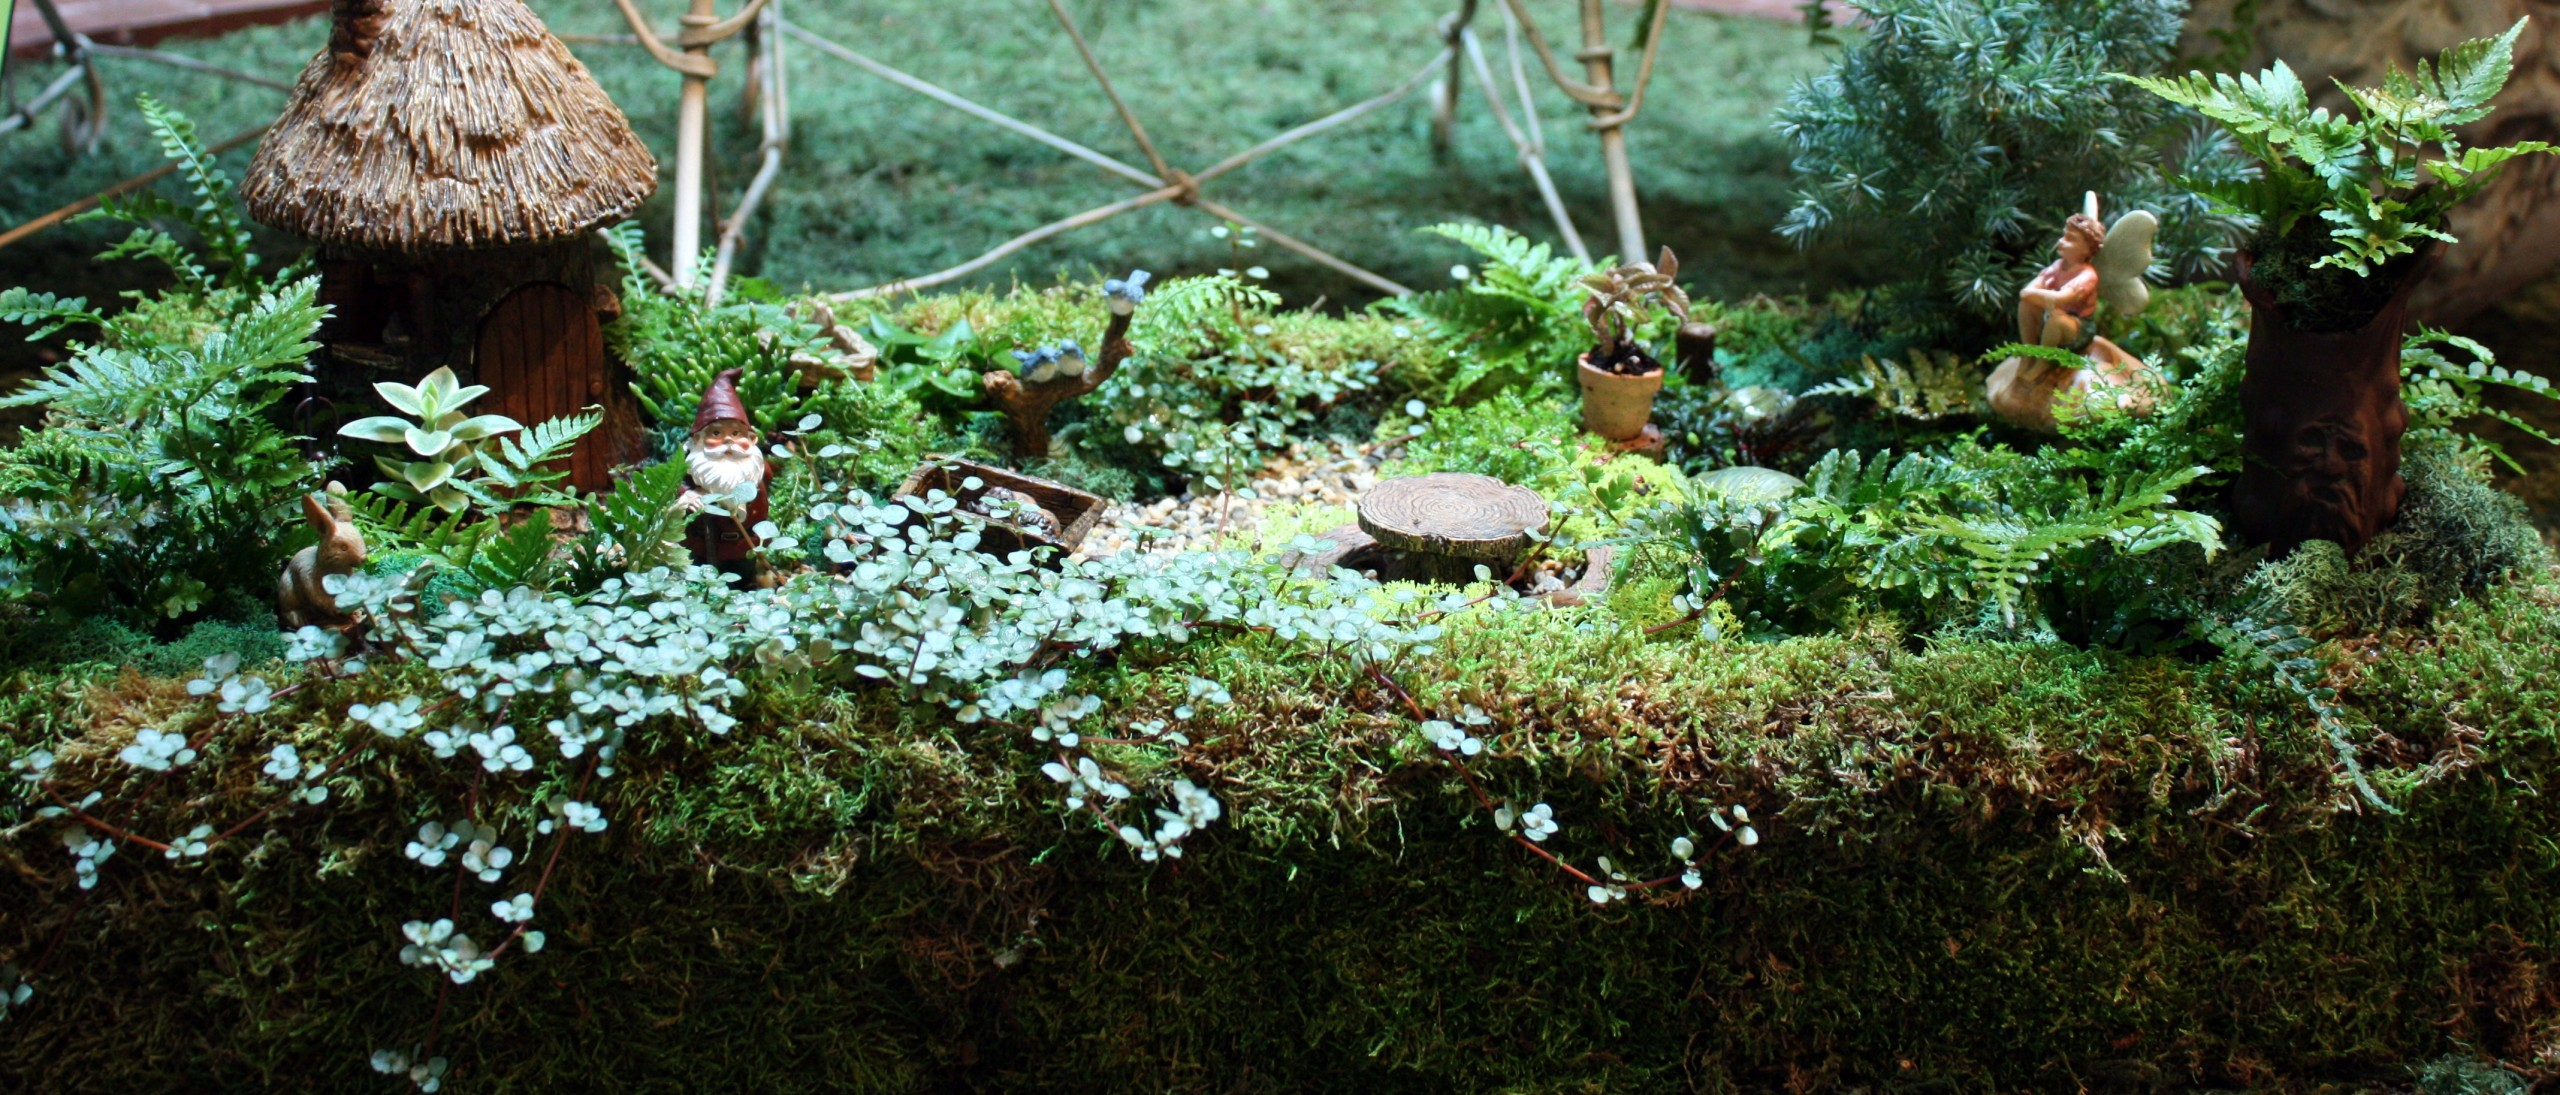 miniature garden with tiny gnome, fairy, and wheelbarrow figures